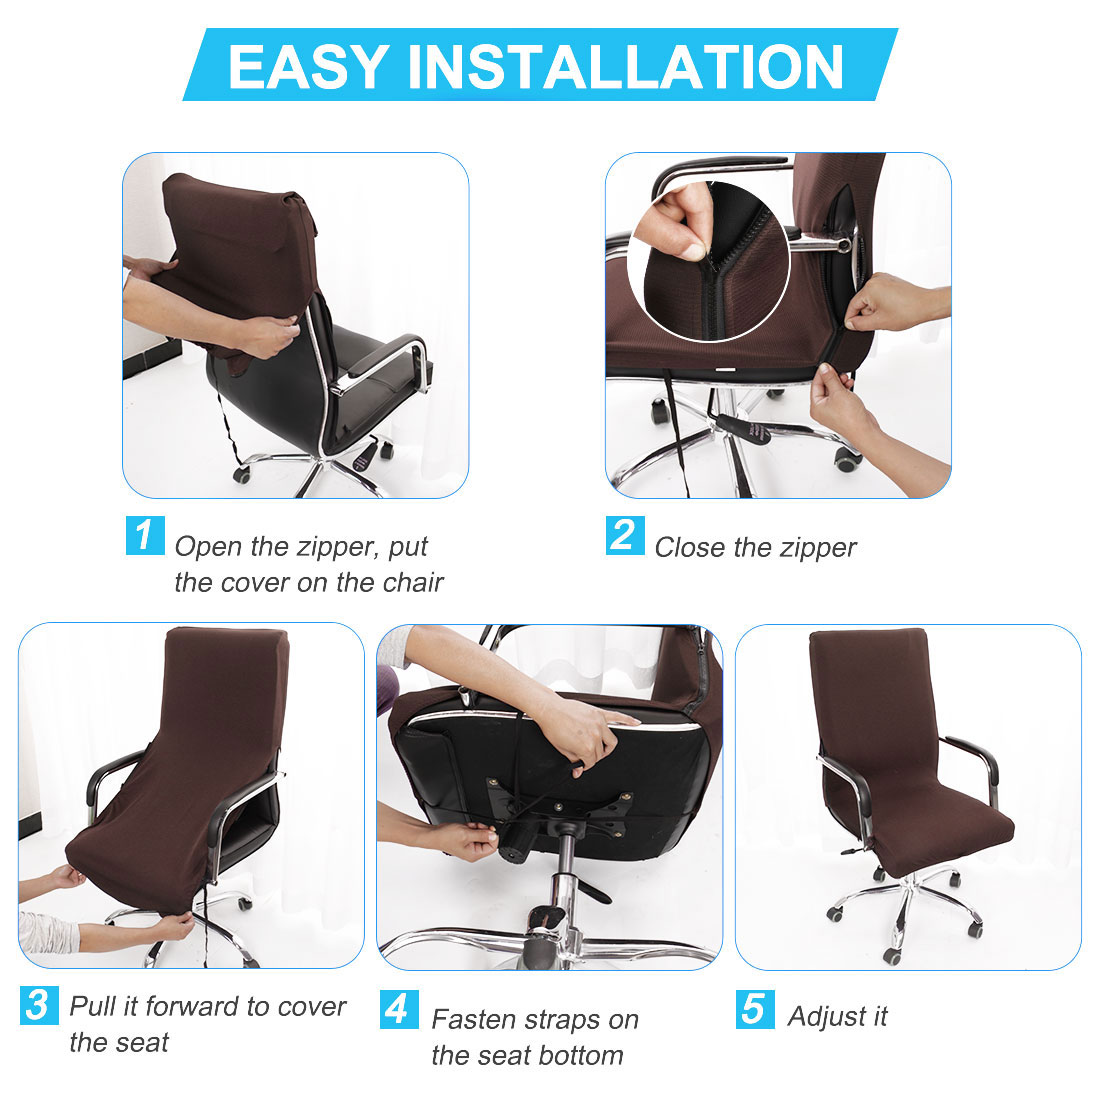 Jacquard Stripe Computer Chair Covers High Back Desk Chair Slipcovers For Universal Rotating Boss Chair With Armrest Black Large Piccocasa Stretchable Waterproof Office Chair Cover Home Kitchen Home Decor